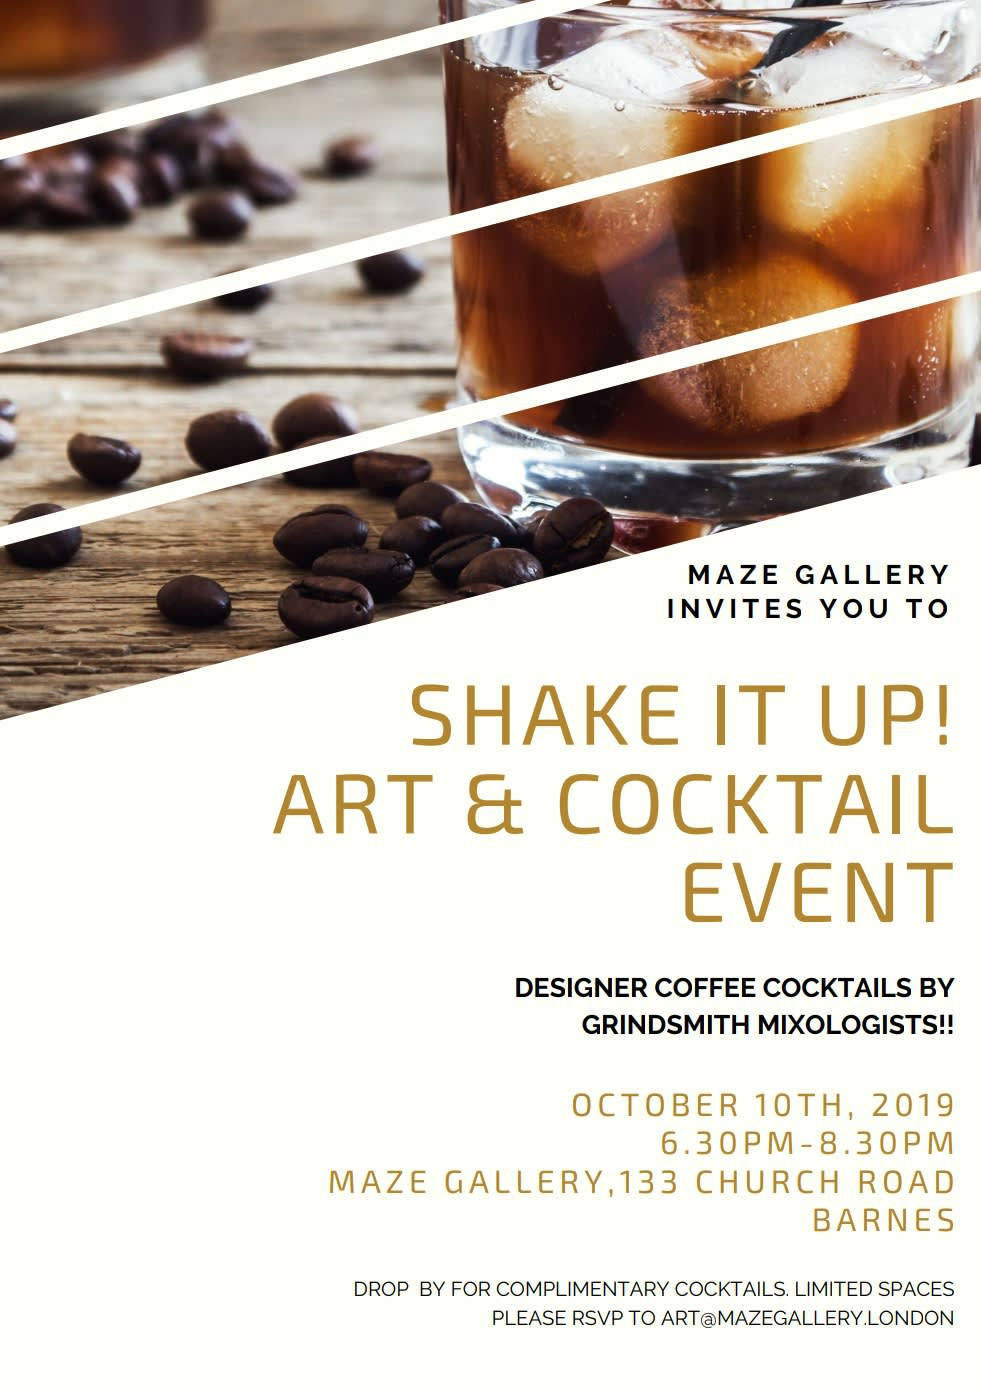 Shake It Up! Art & Cocktail Event